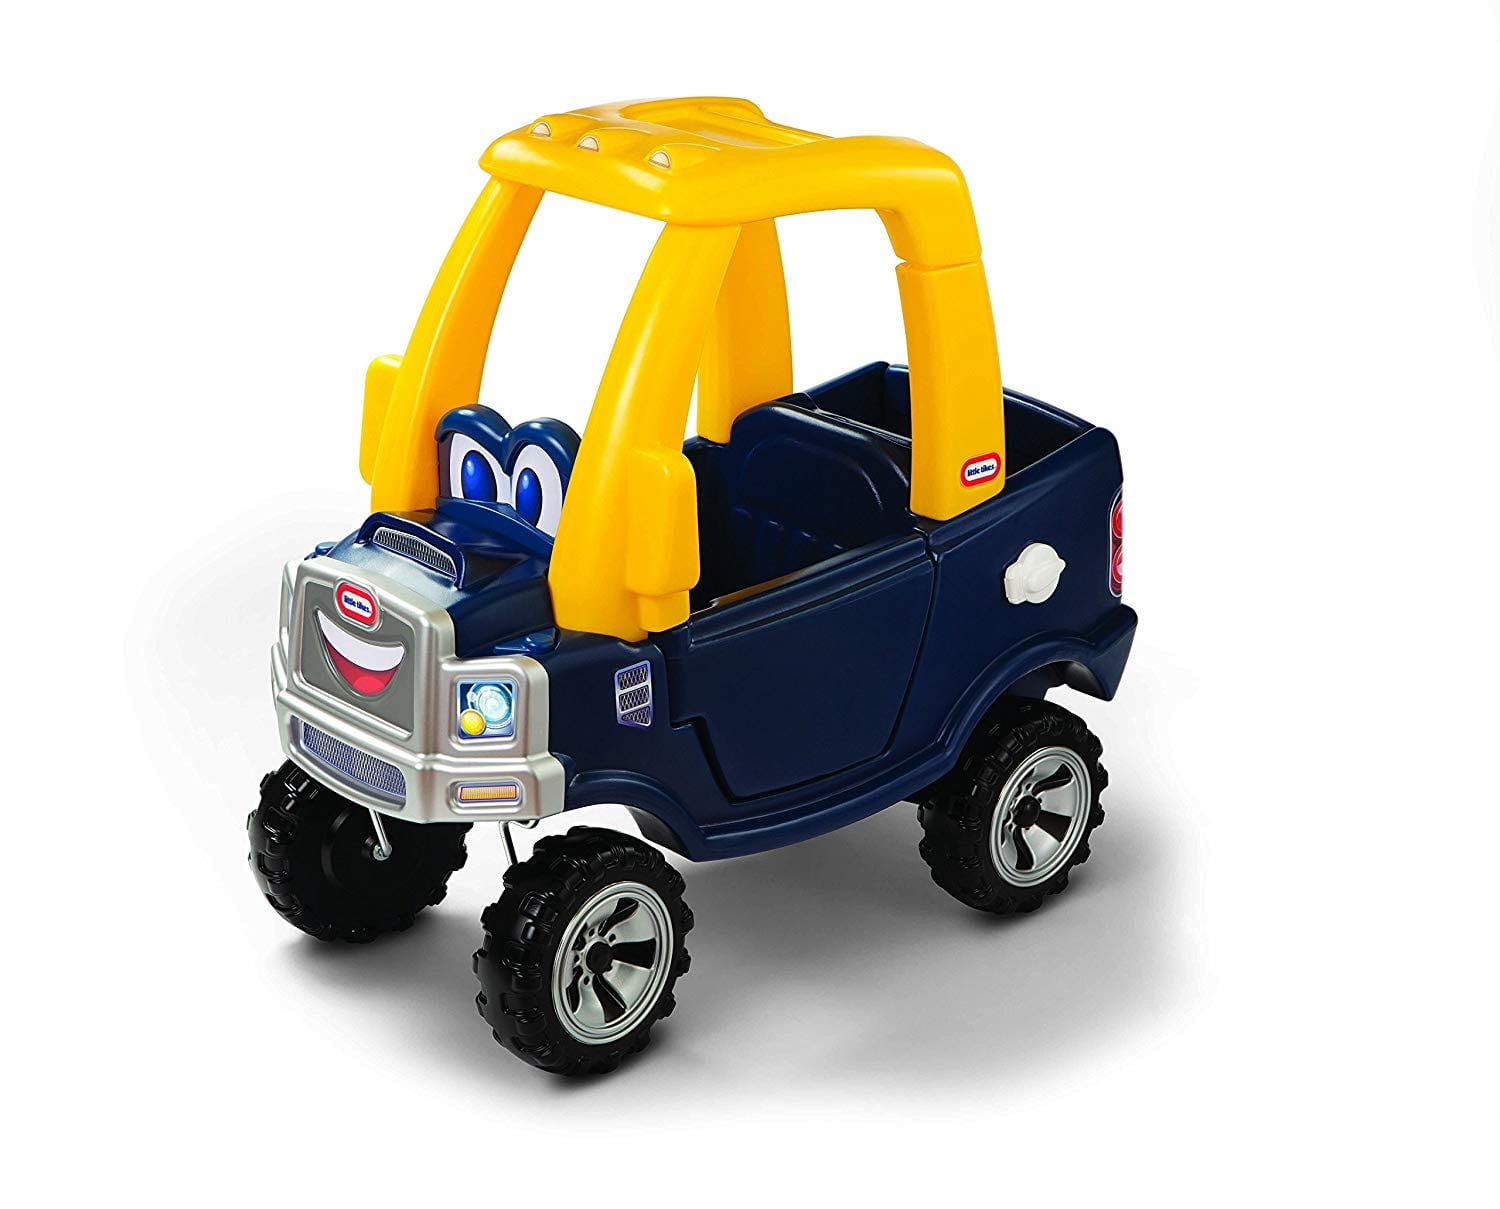 1. Little Tikes Cozy Truck Ride-On